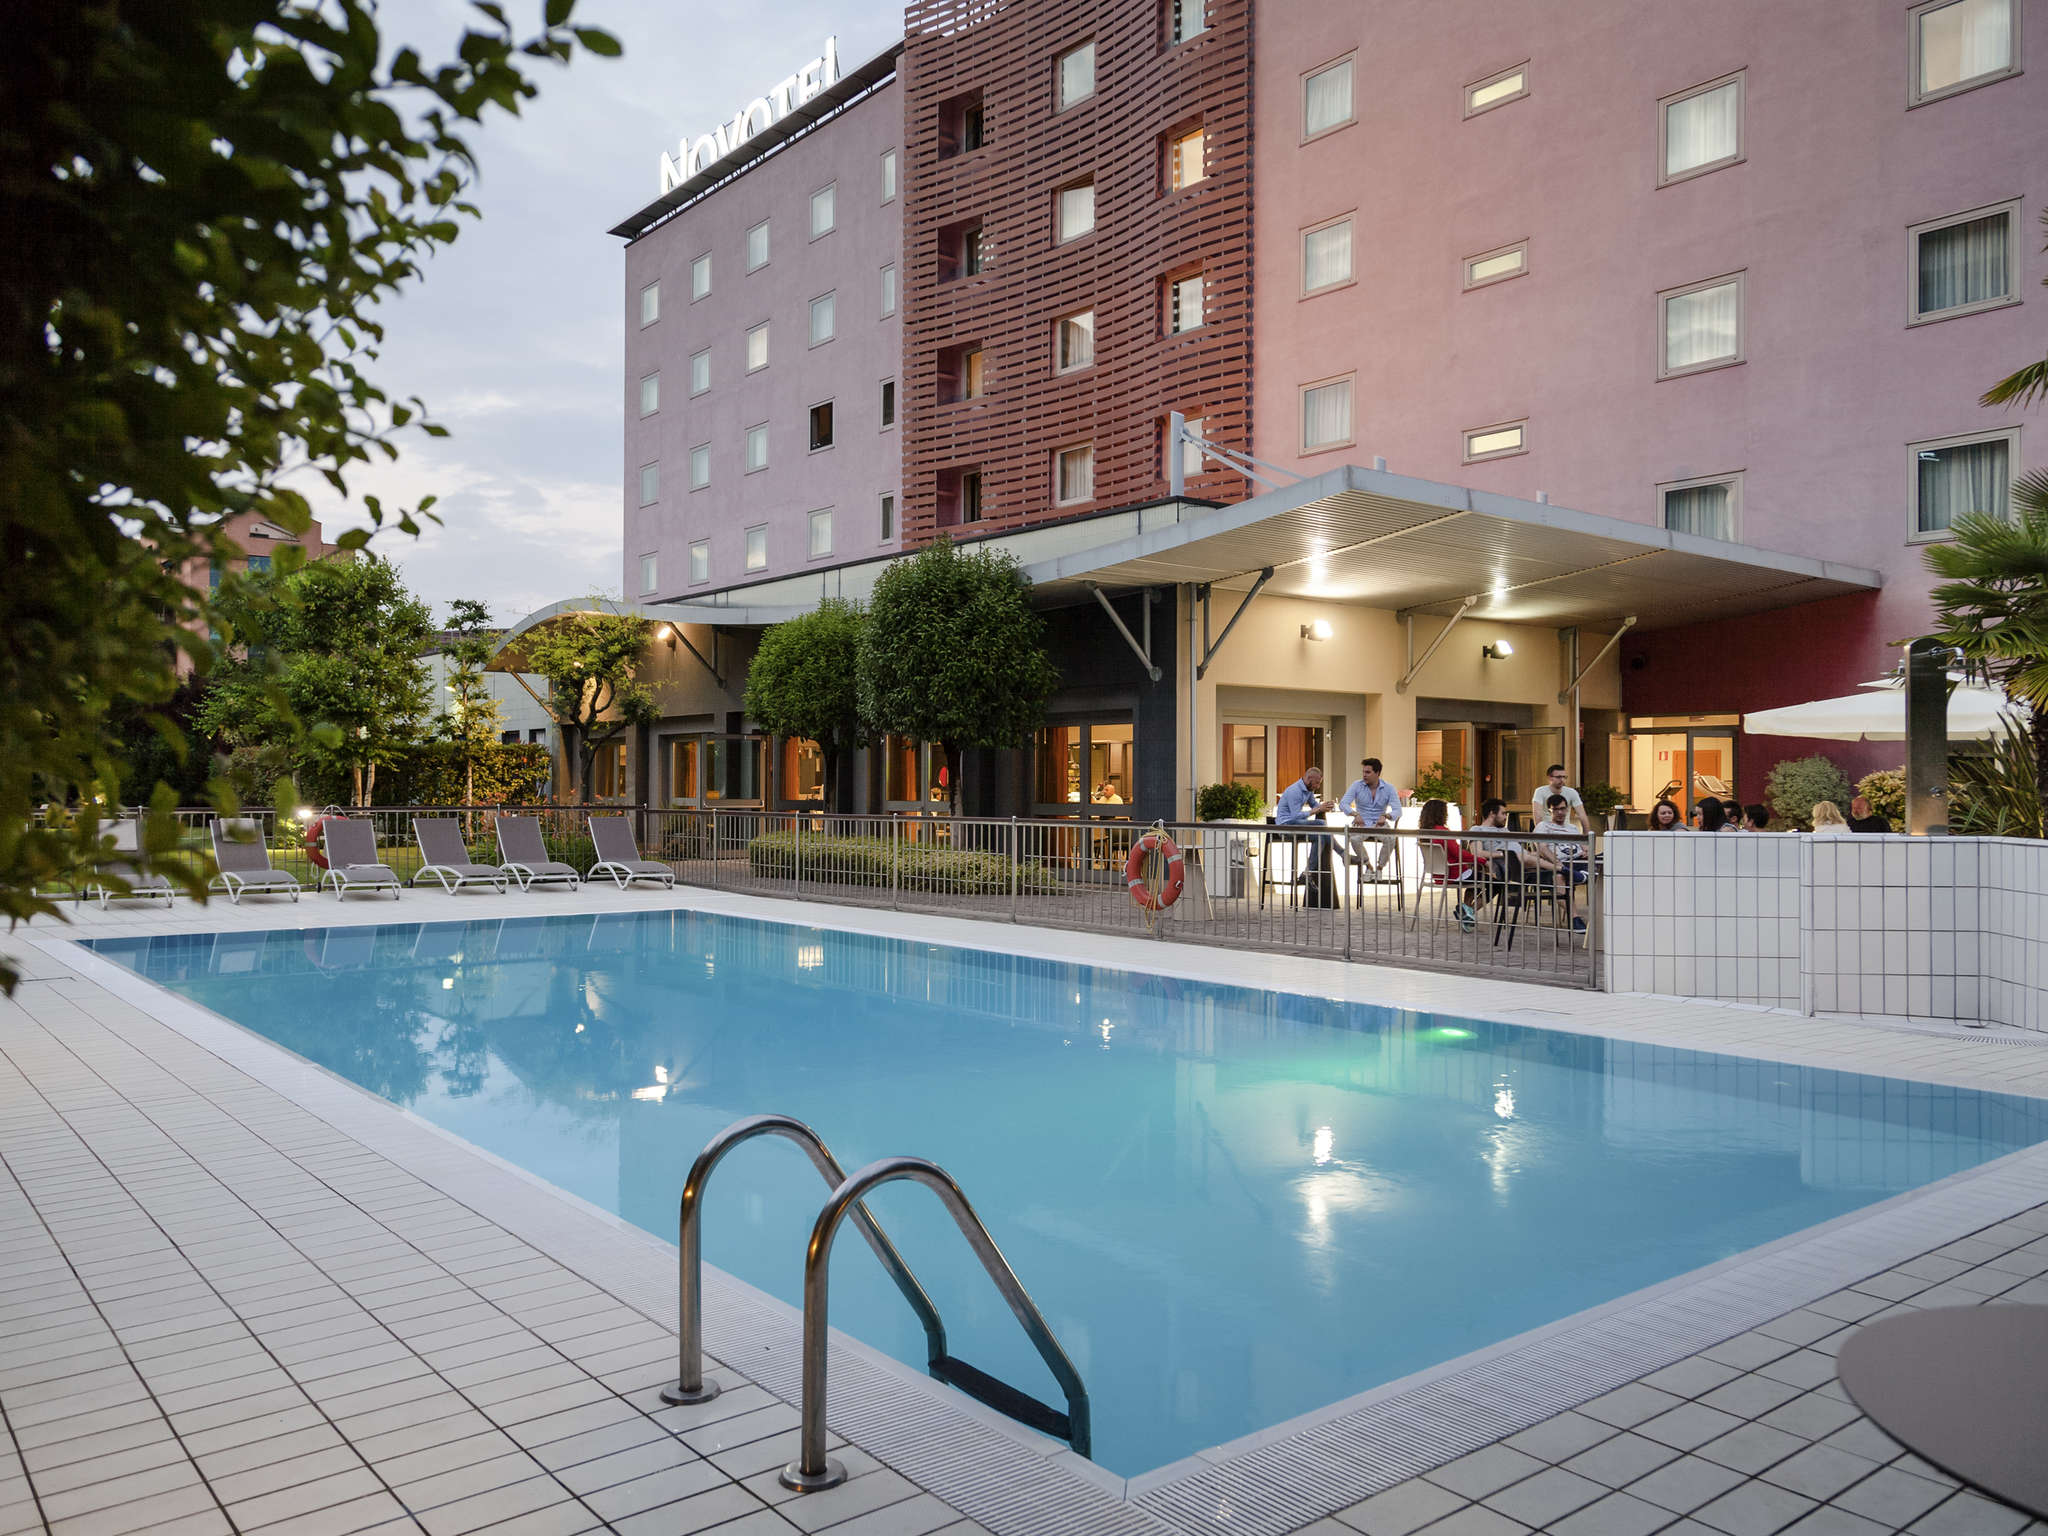 Awesome hotel novotel brescia with interior design brescia - Interior design brescia ...